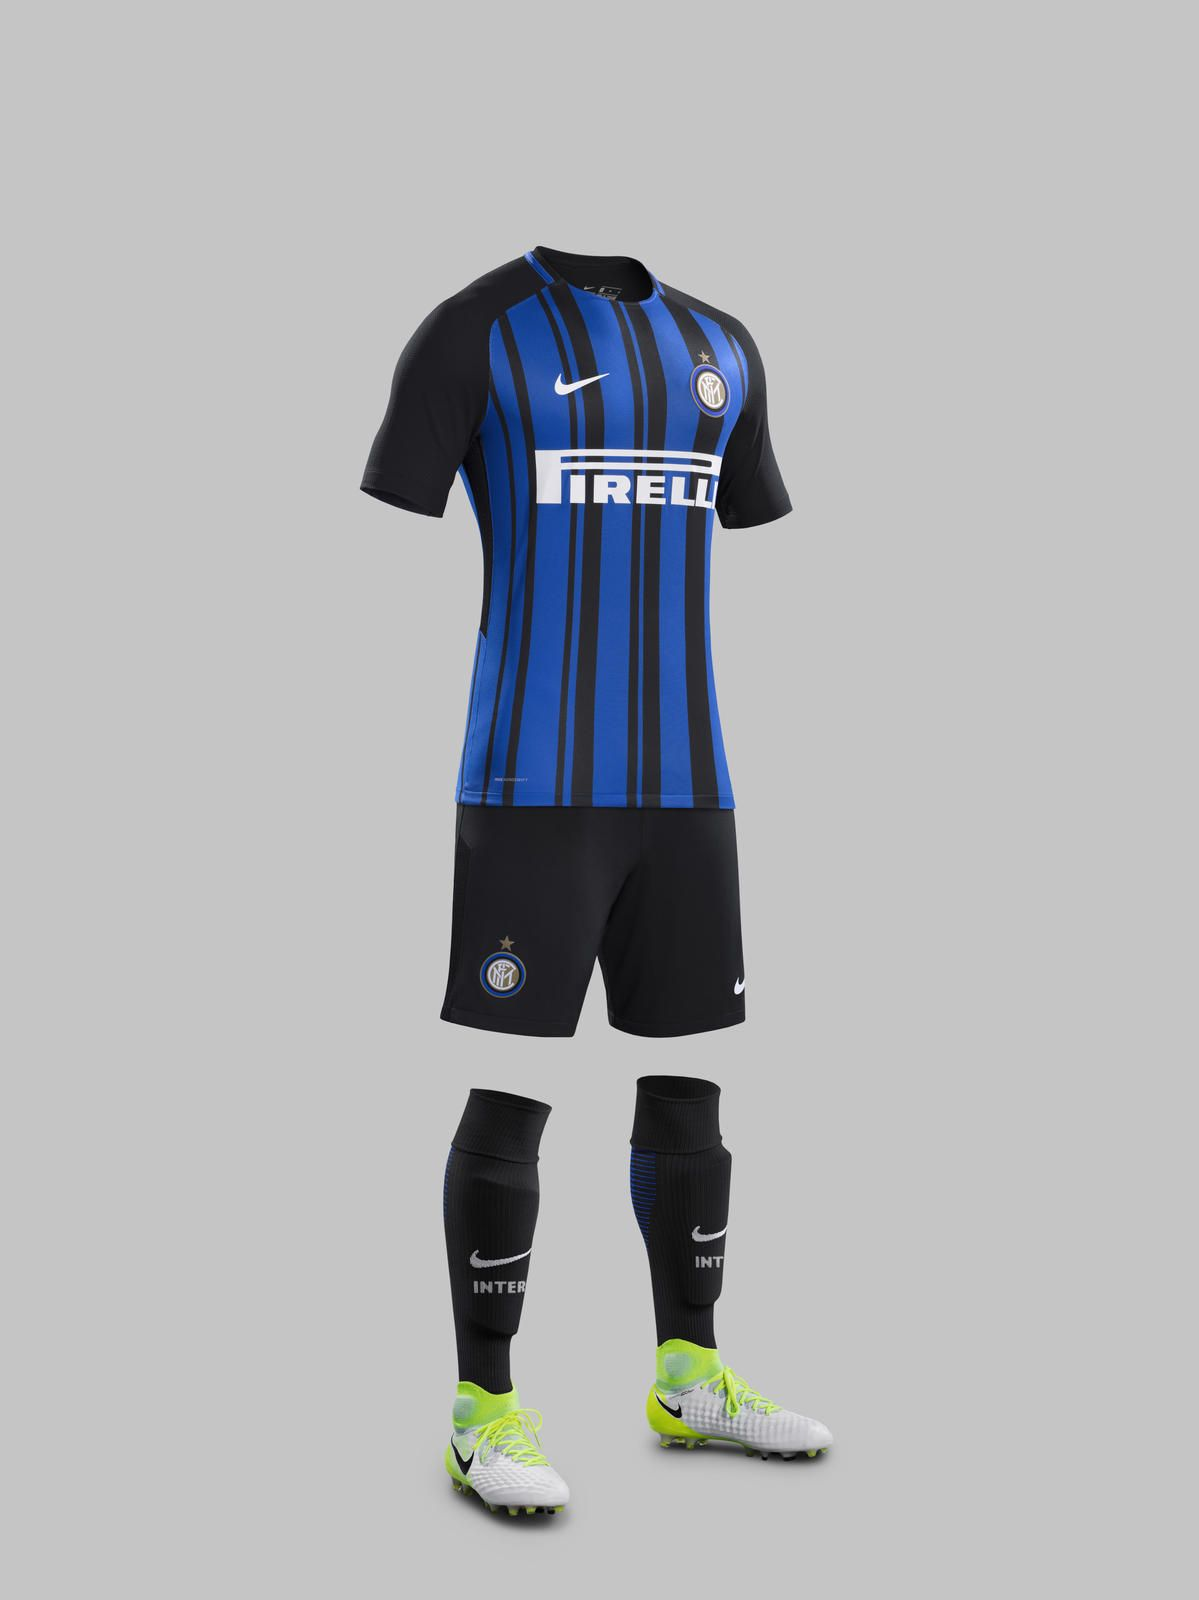 1f4ed9906 The new Inter Milan home kit will be available May 25 via nike.com